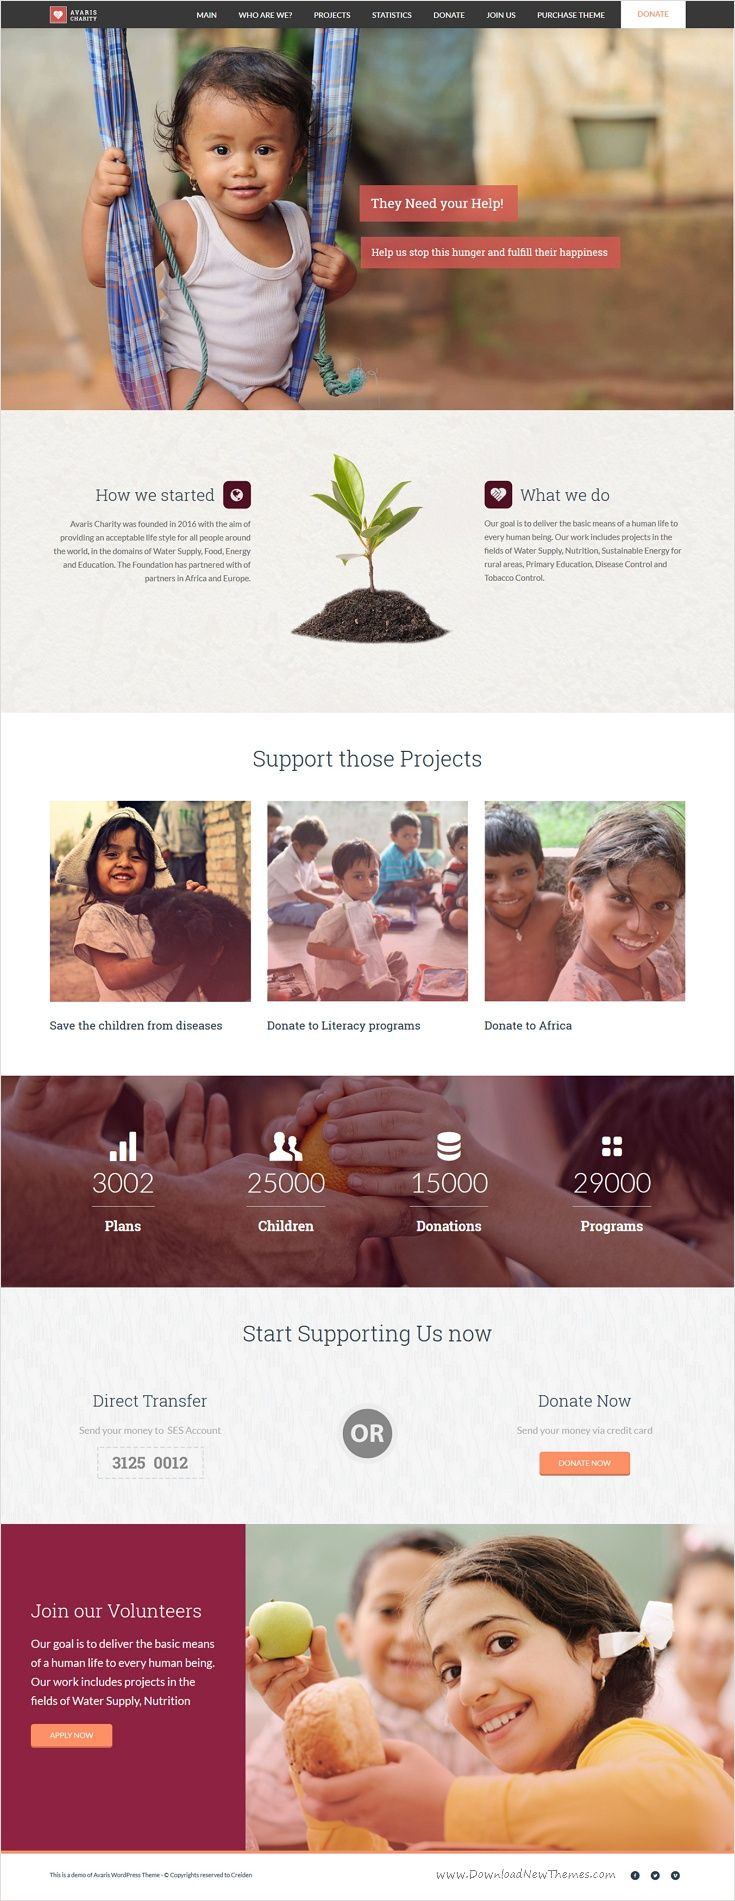 Avaris is modern design responsive multipurpose #WordPress theme for stunning #charity organization website with 12+ unique homepage layouts download now➩